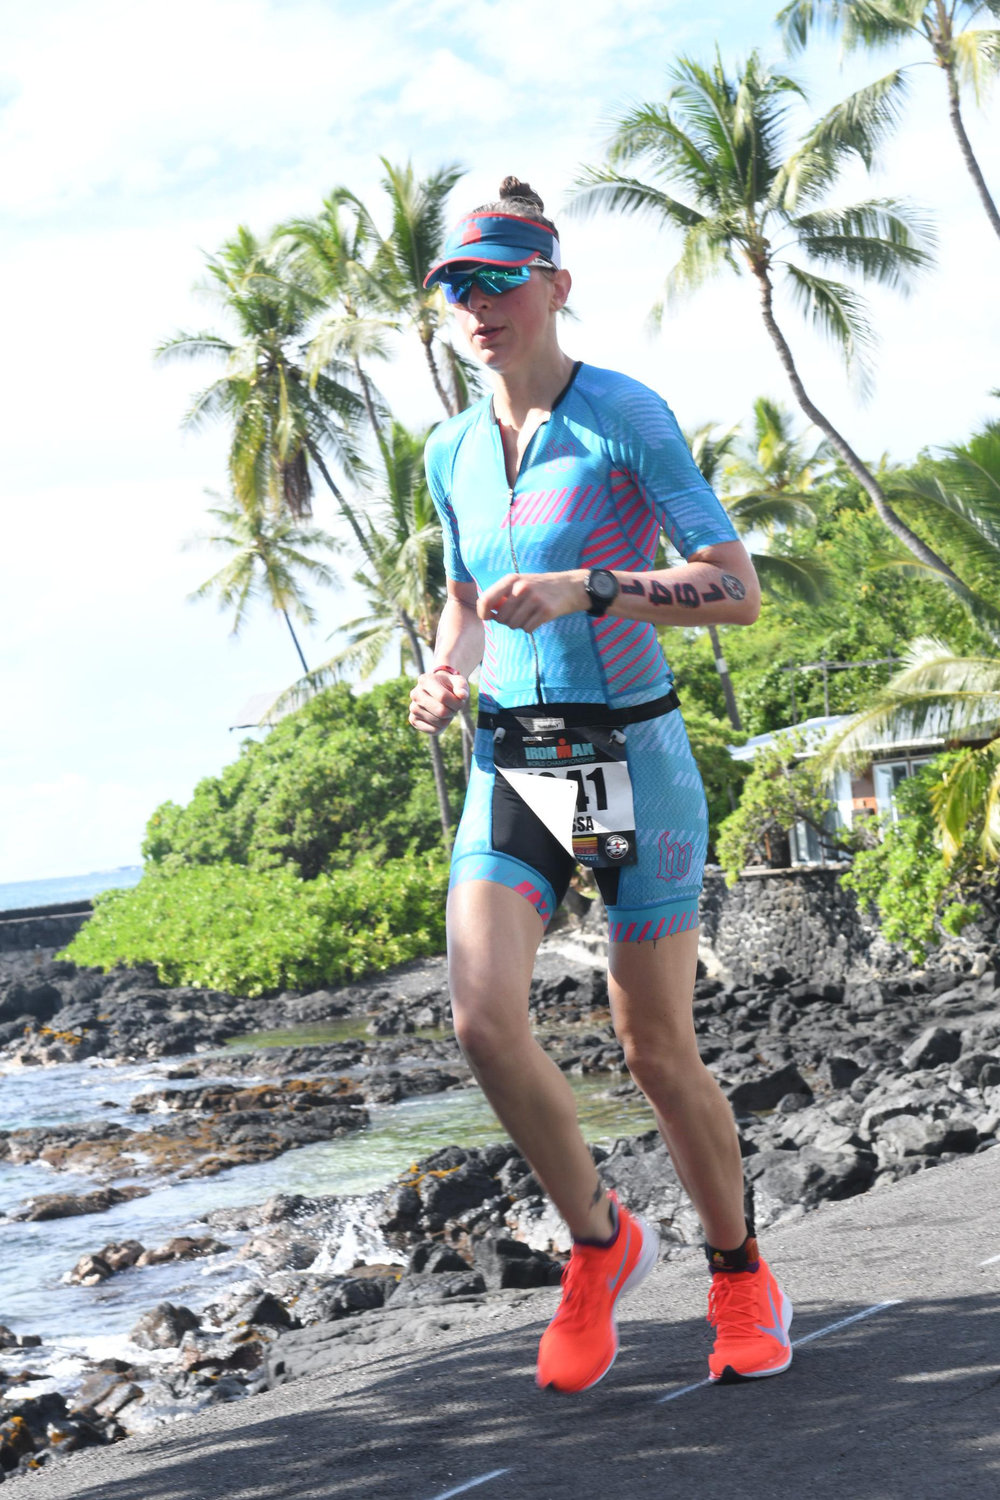 Coach_Terry_Wilson_Pursuit_of_The_Perfect_Race_IRONMAN_World_Championship_Kona_Missy_Norcross_F5.JPG